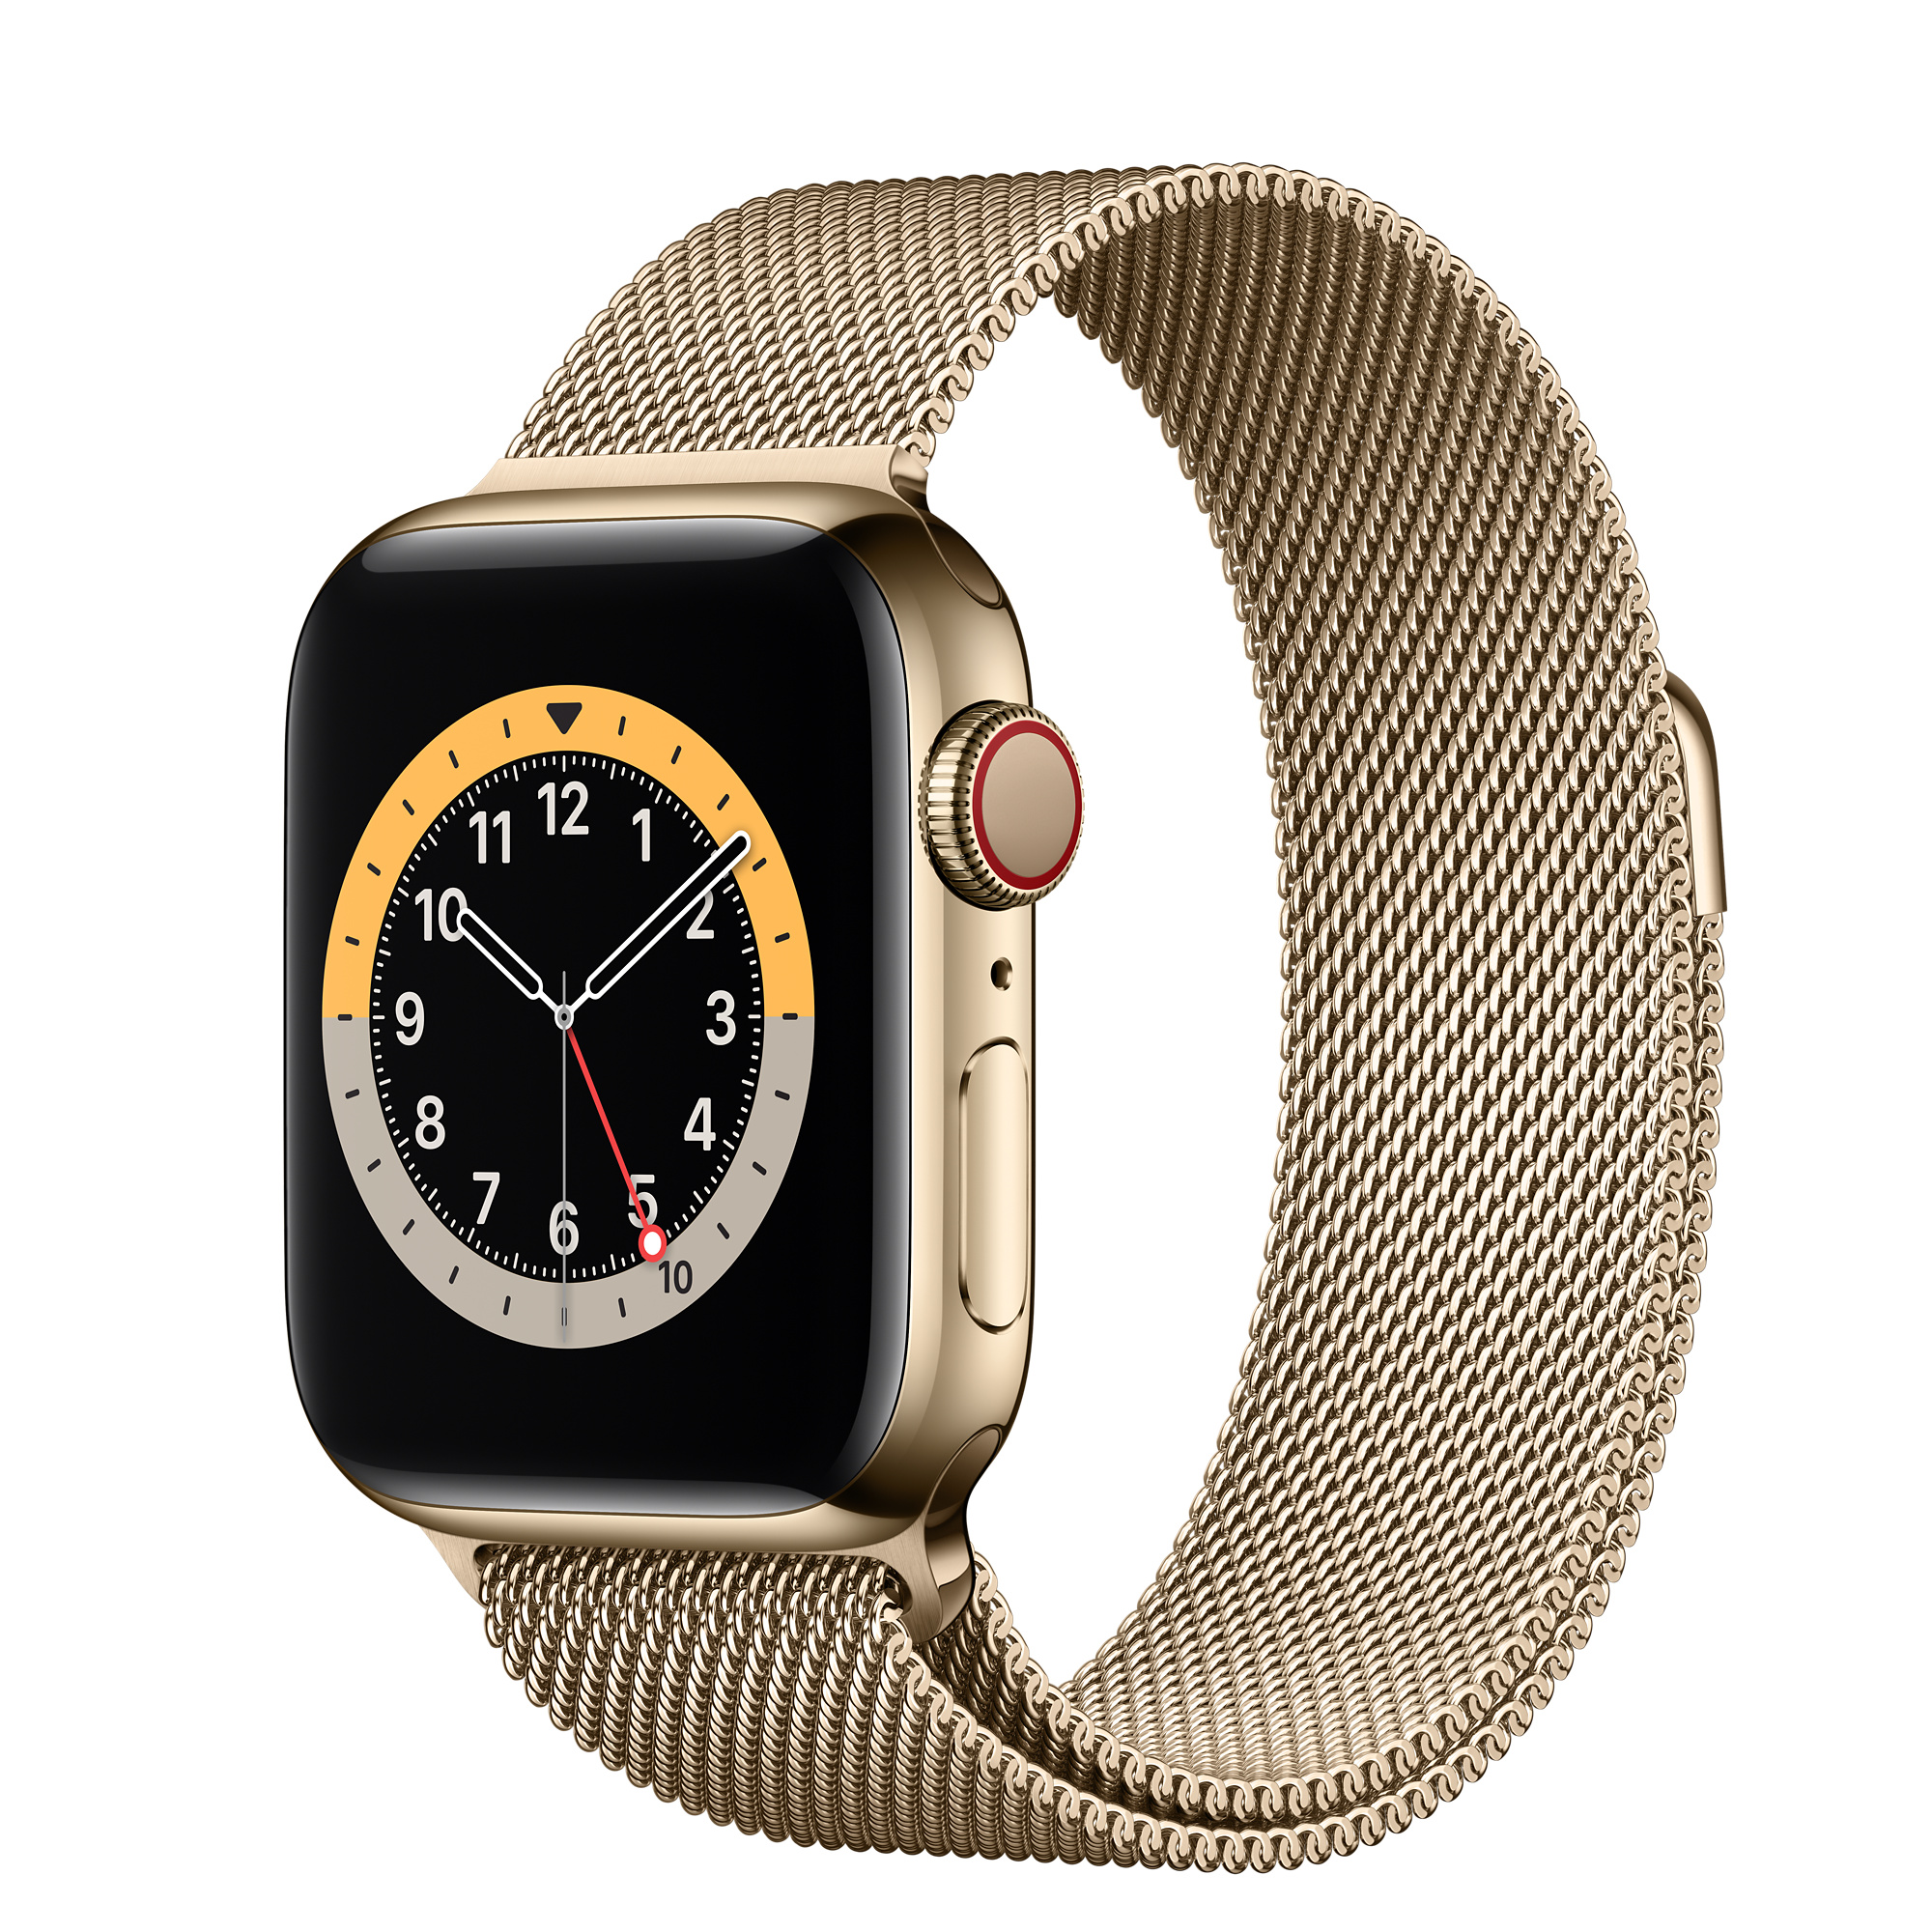 Apple Watch Series 6 Gps Cellular 40mm Gold Stainless Steel Case With Gold Milanese Loop Apple